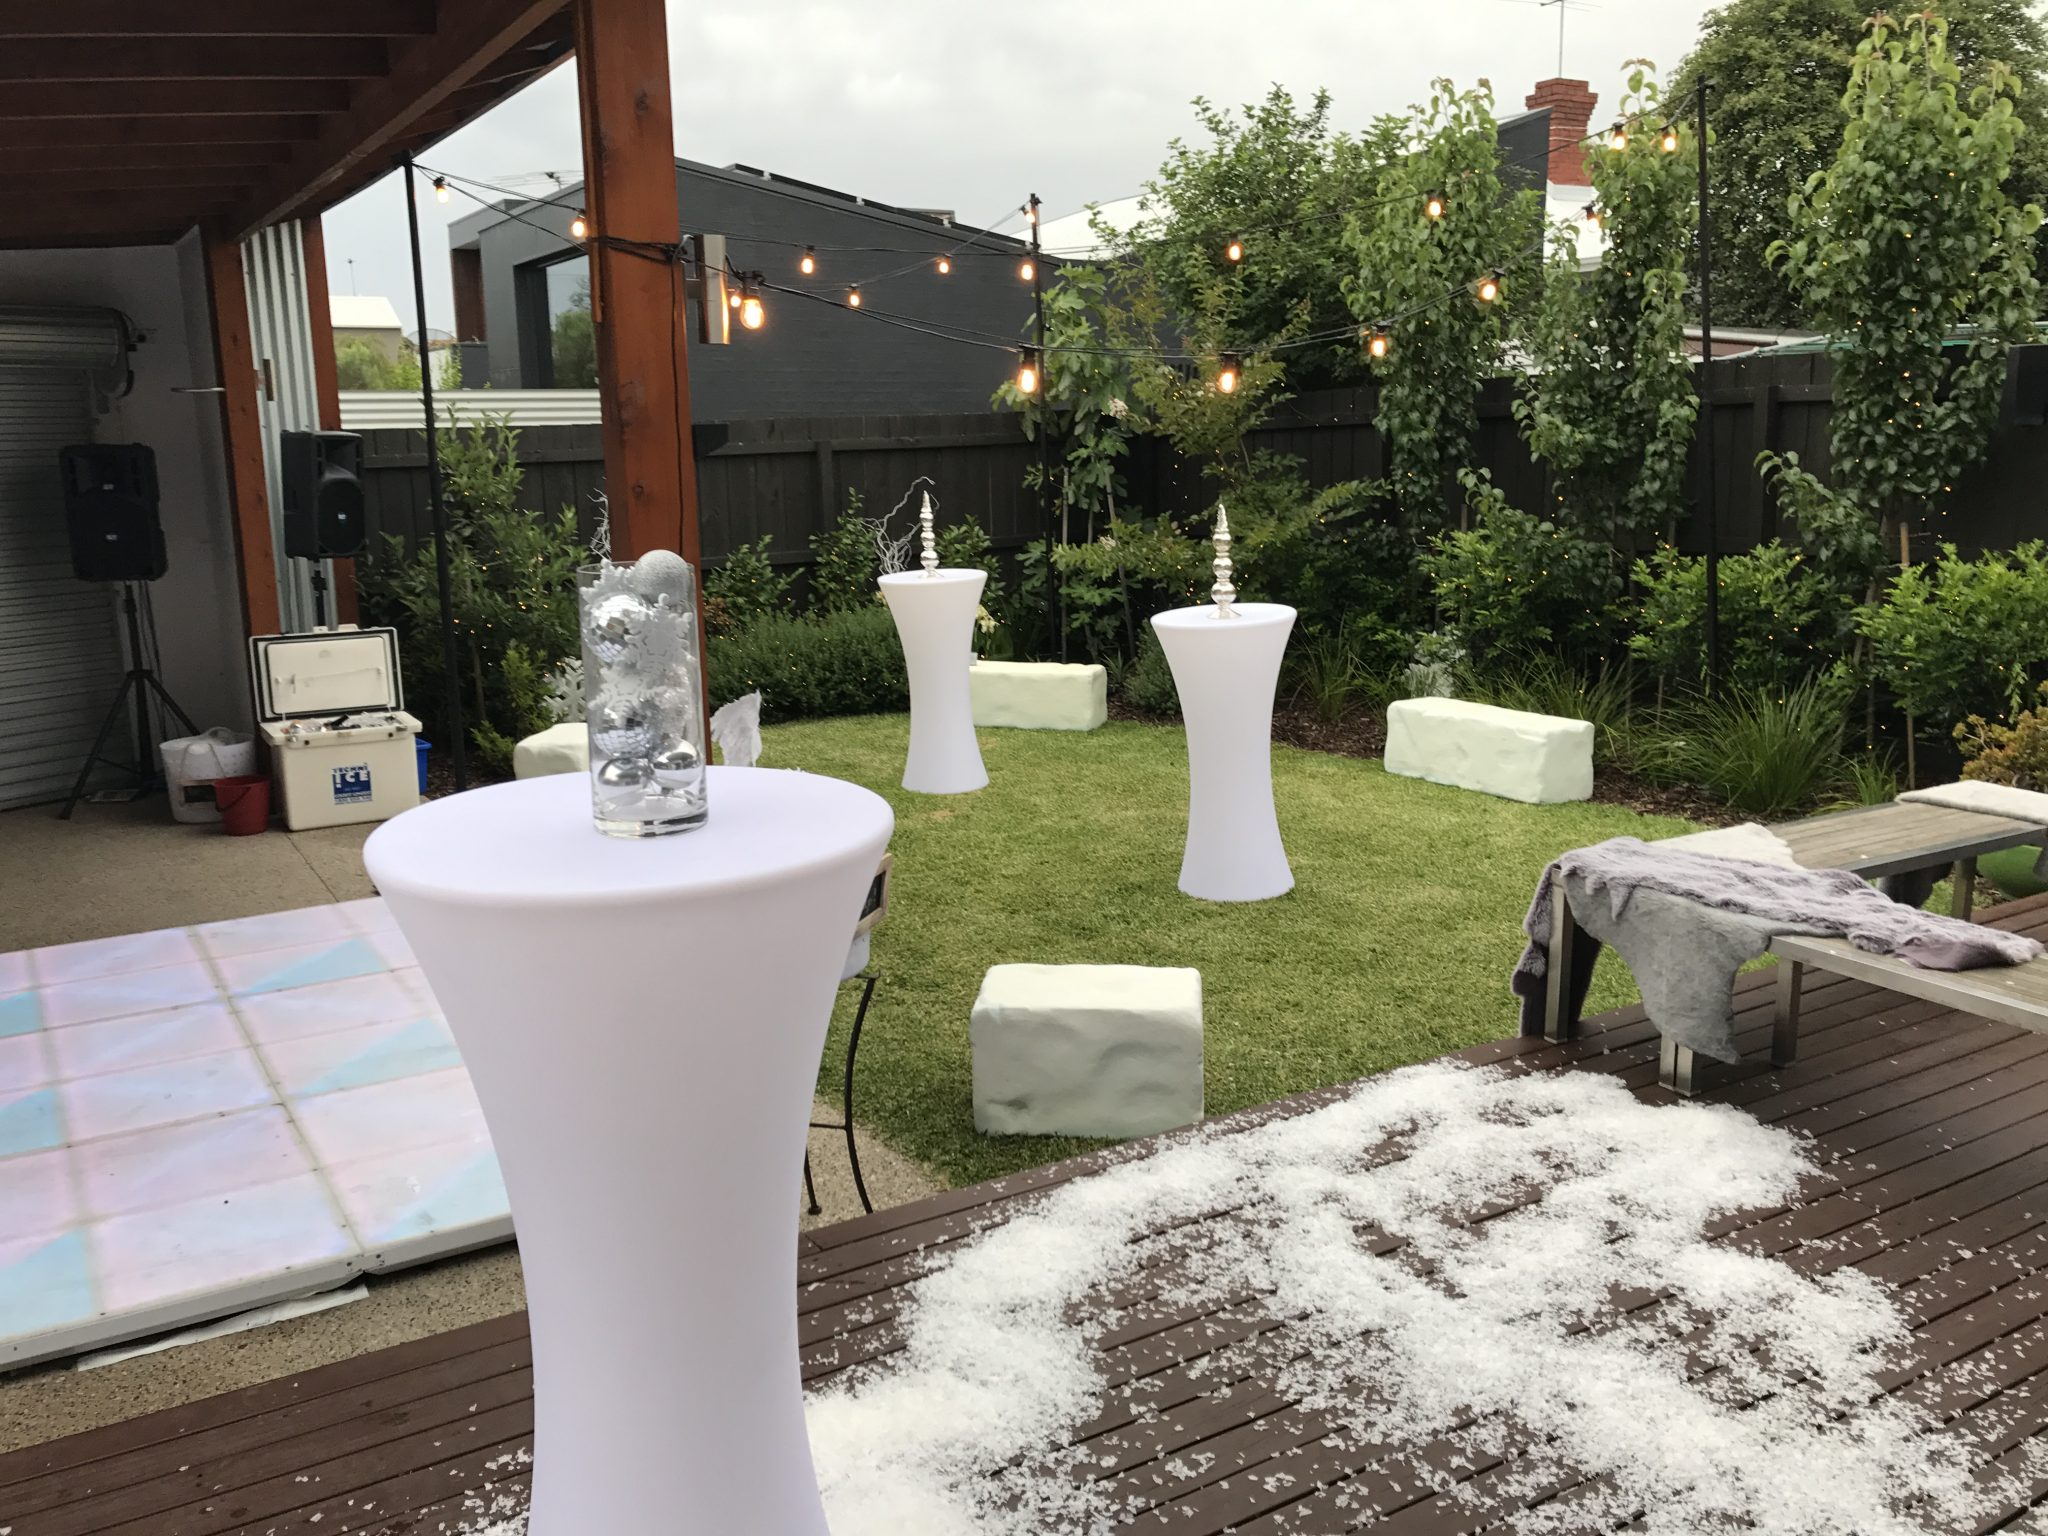 Light up tables and furniture hire